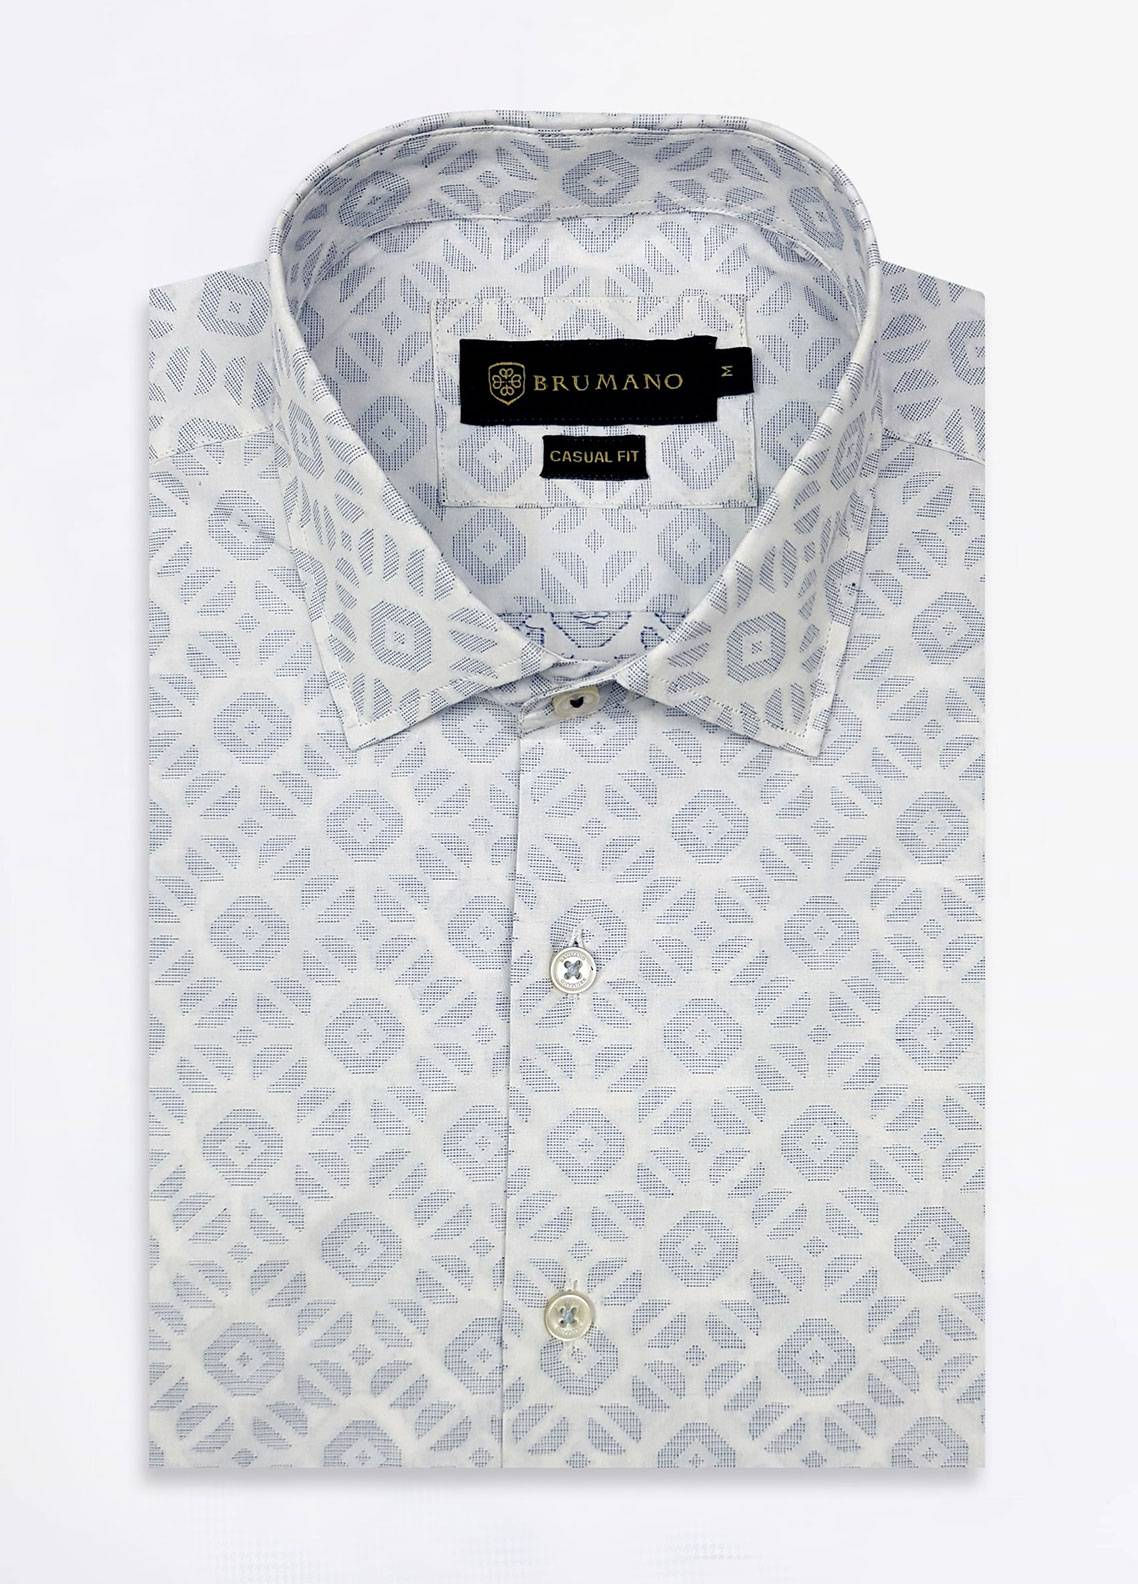 Brumano Cotton Formal Men Shirts - White BRM-520